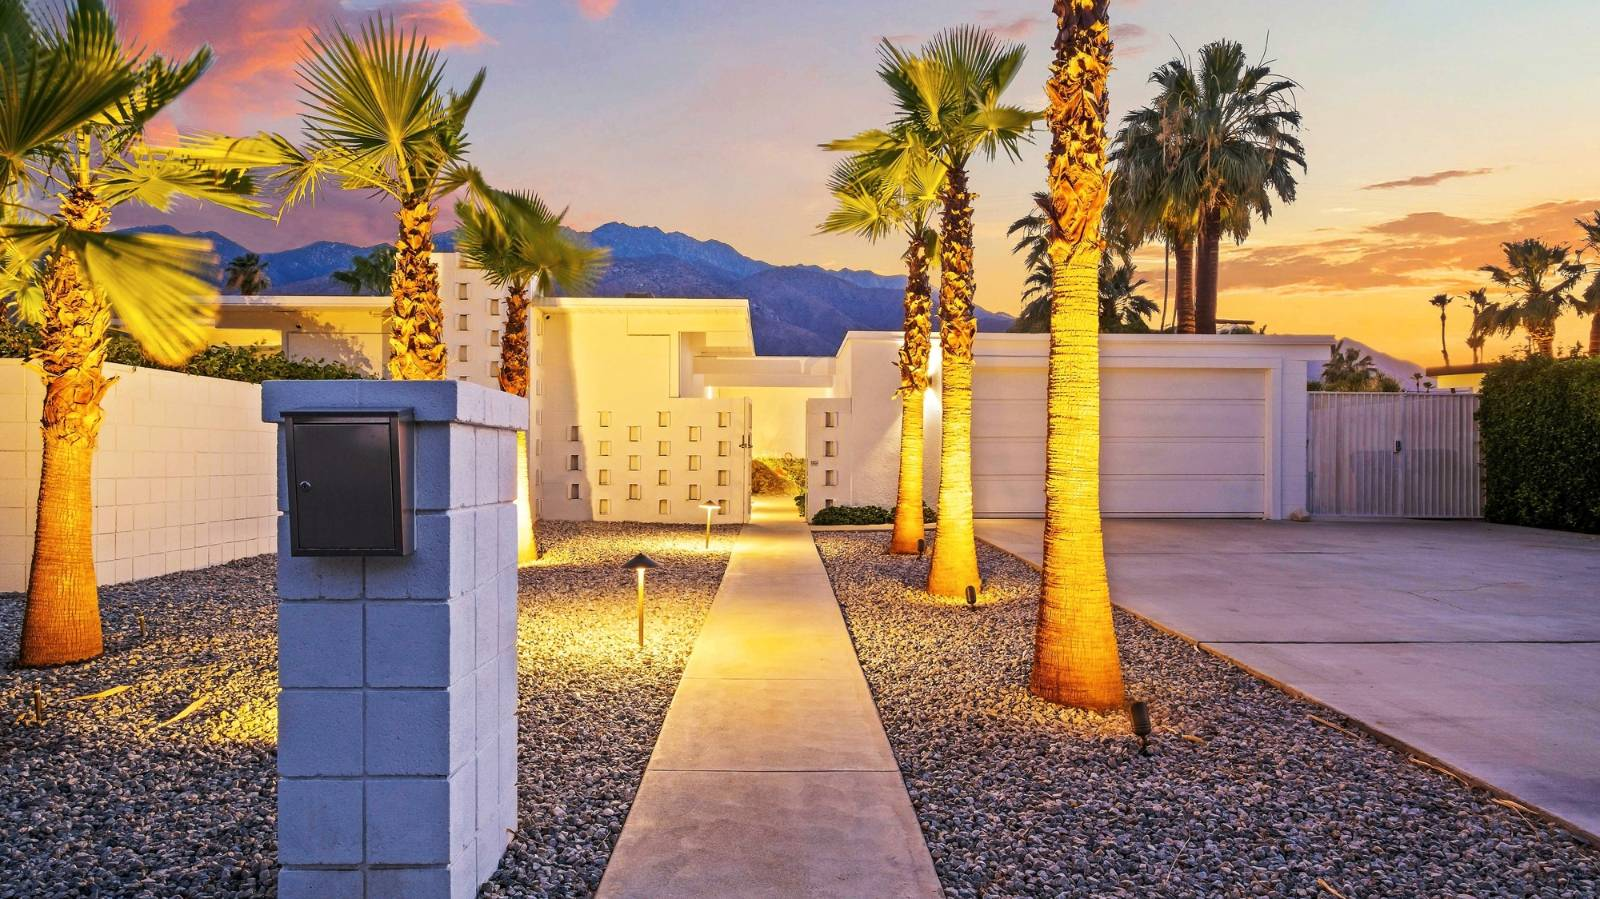 Palm Springs is a perfect fit for this Kiwi's lifestyle